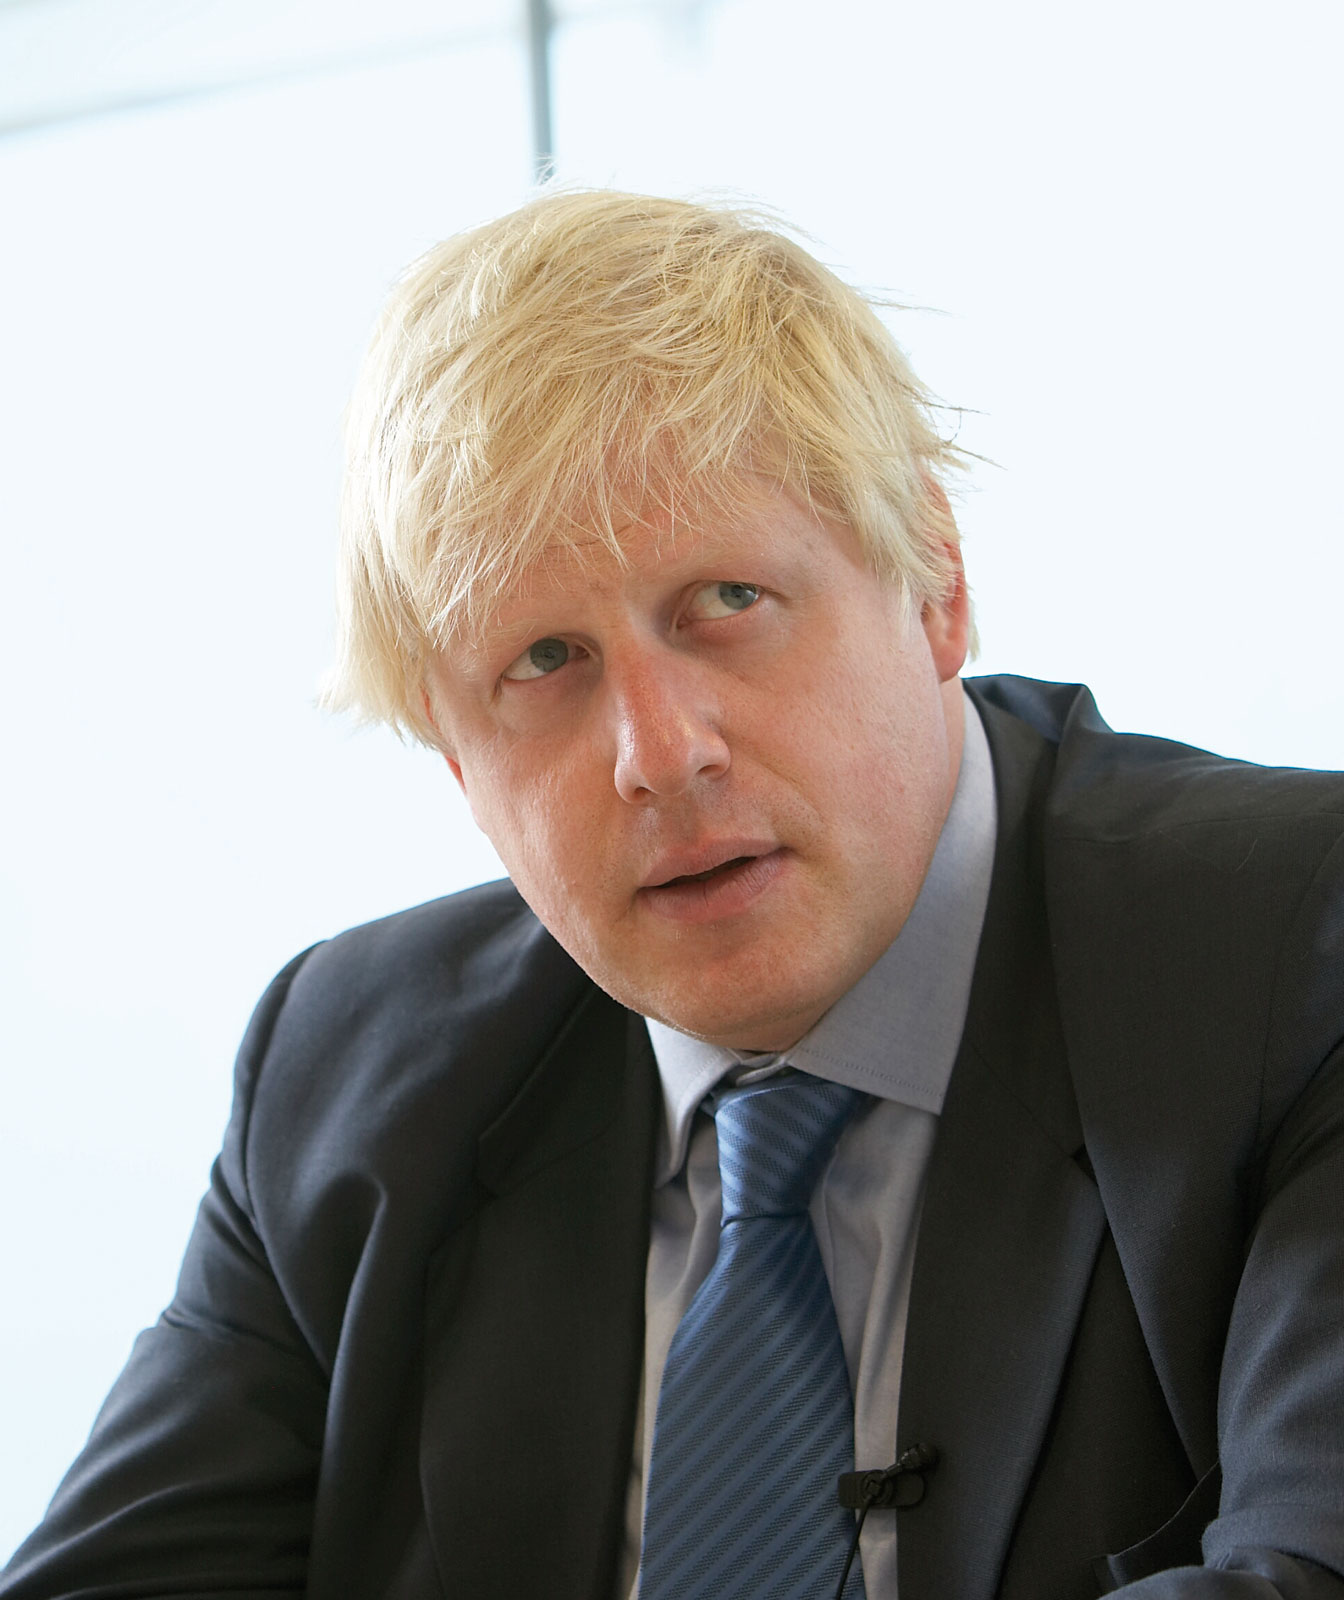 UK PM Boris Johnson reduces length of India trip over COVID-19 situation in the country